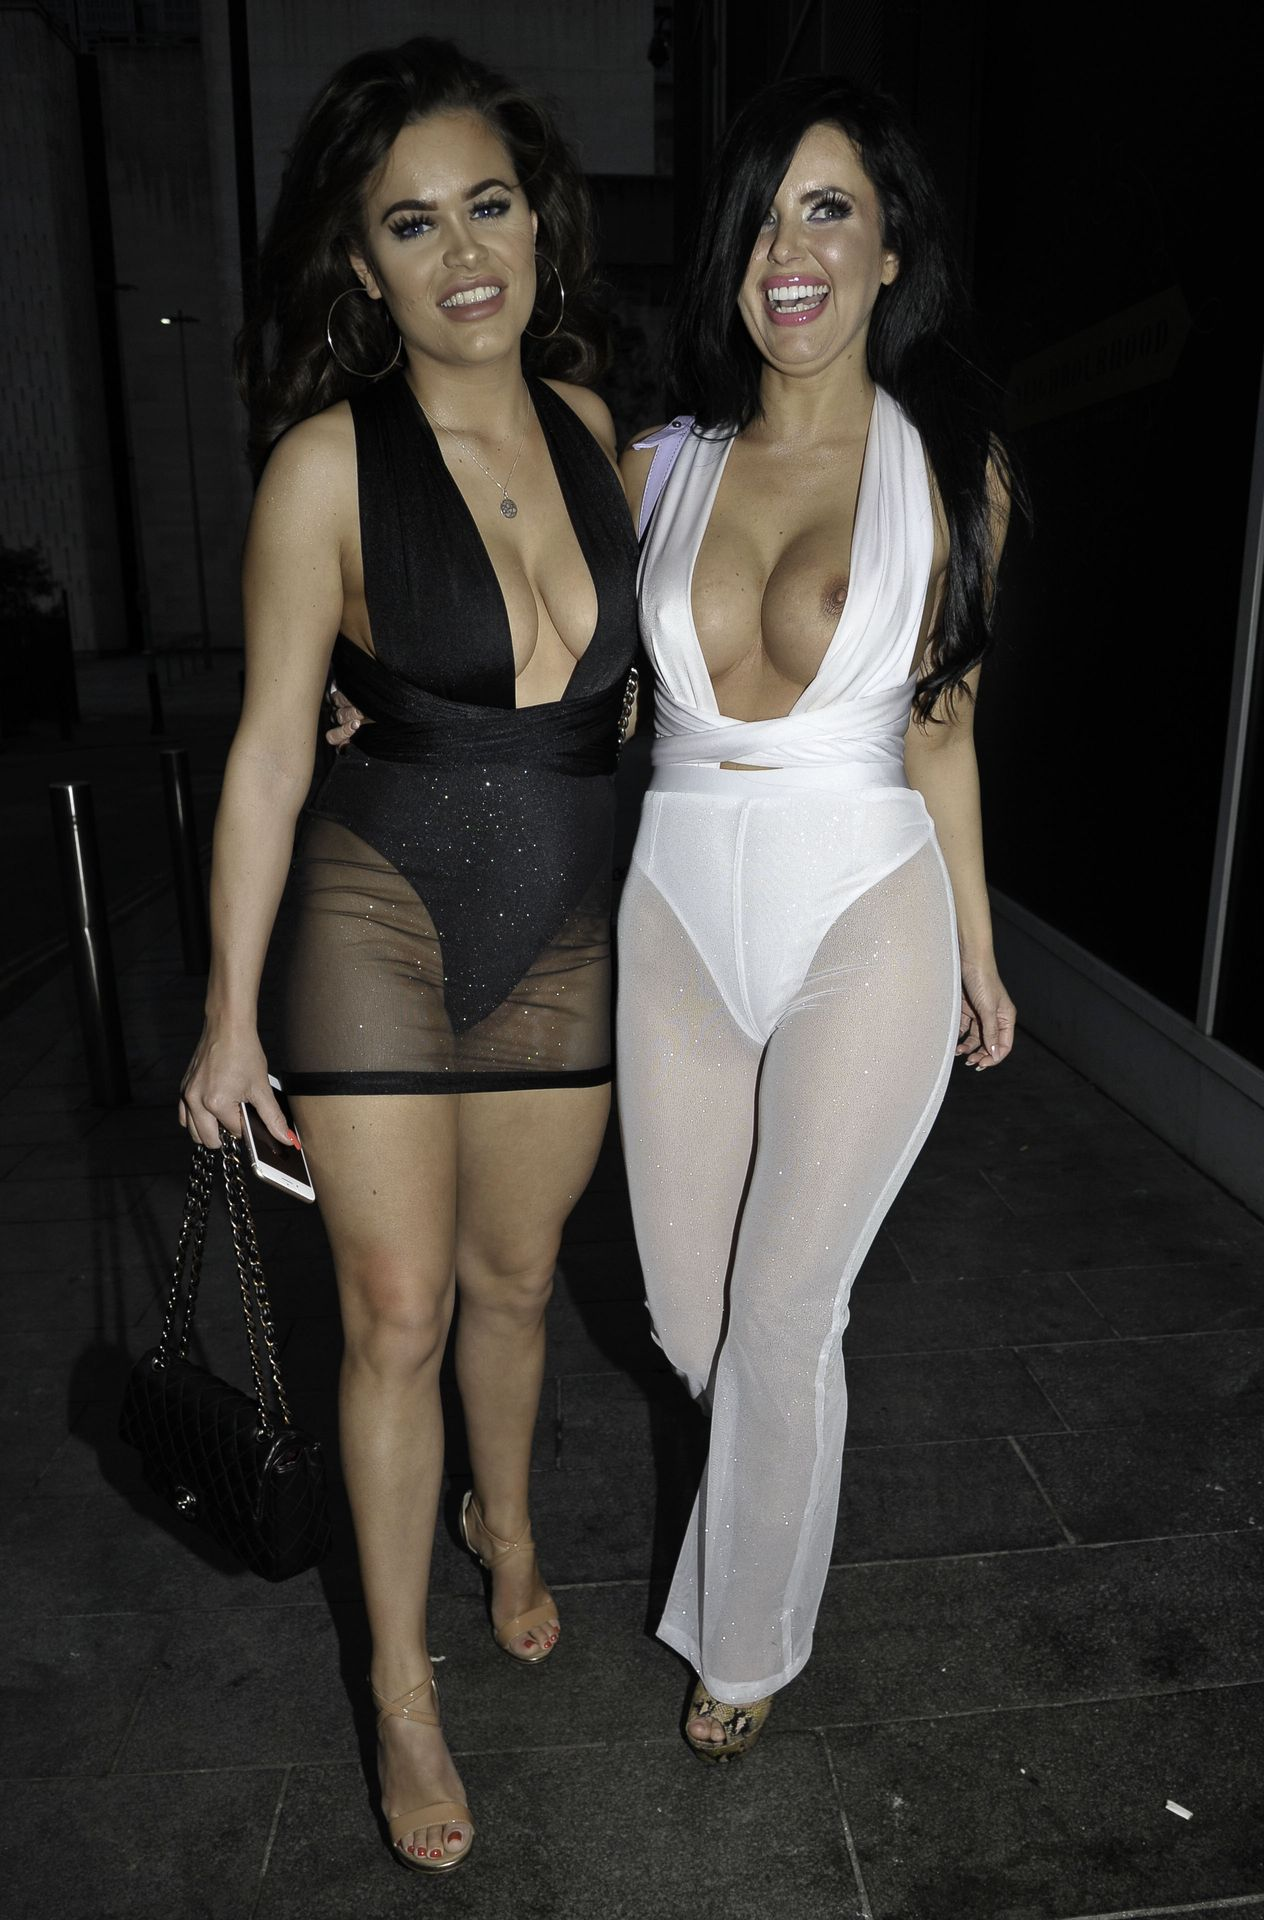 Rhianne Saxby & Sarah Longbottom Look Hot In Manchester 0016